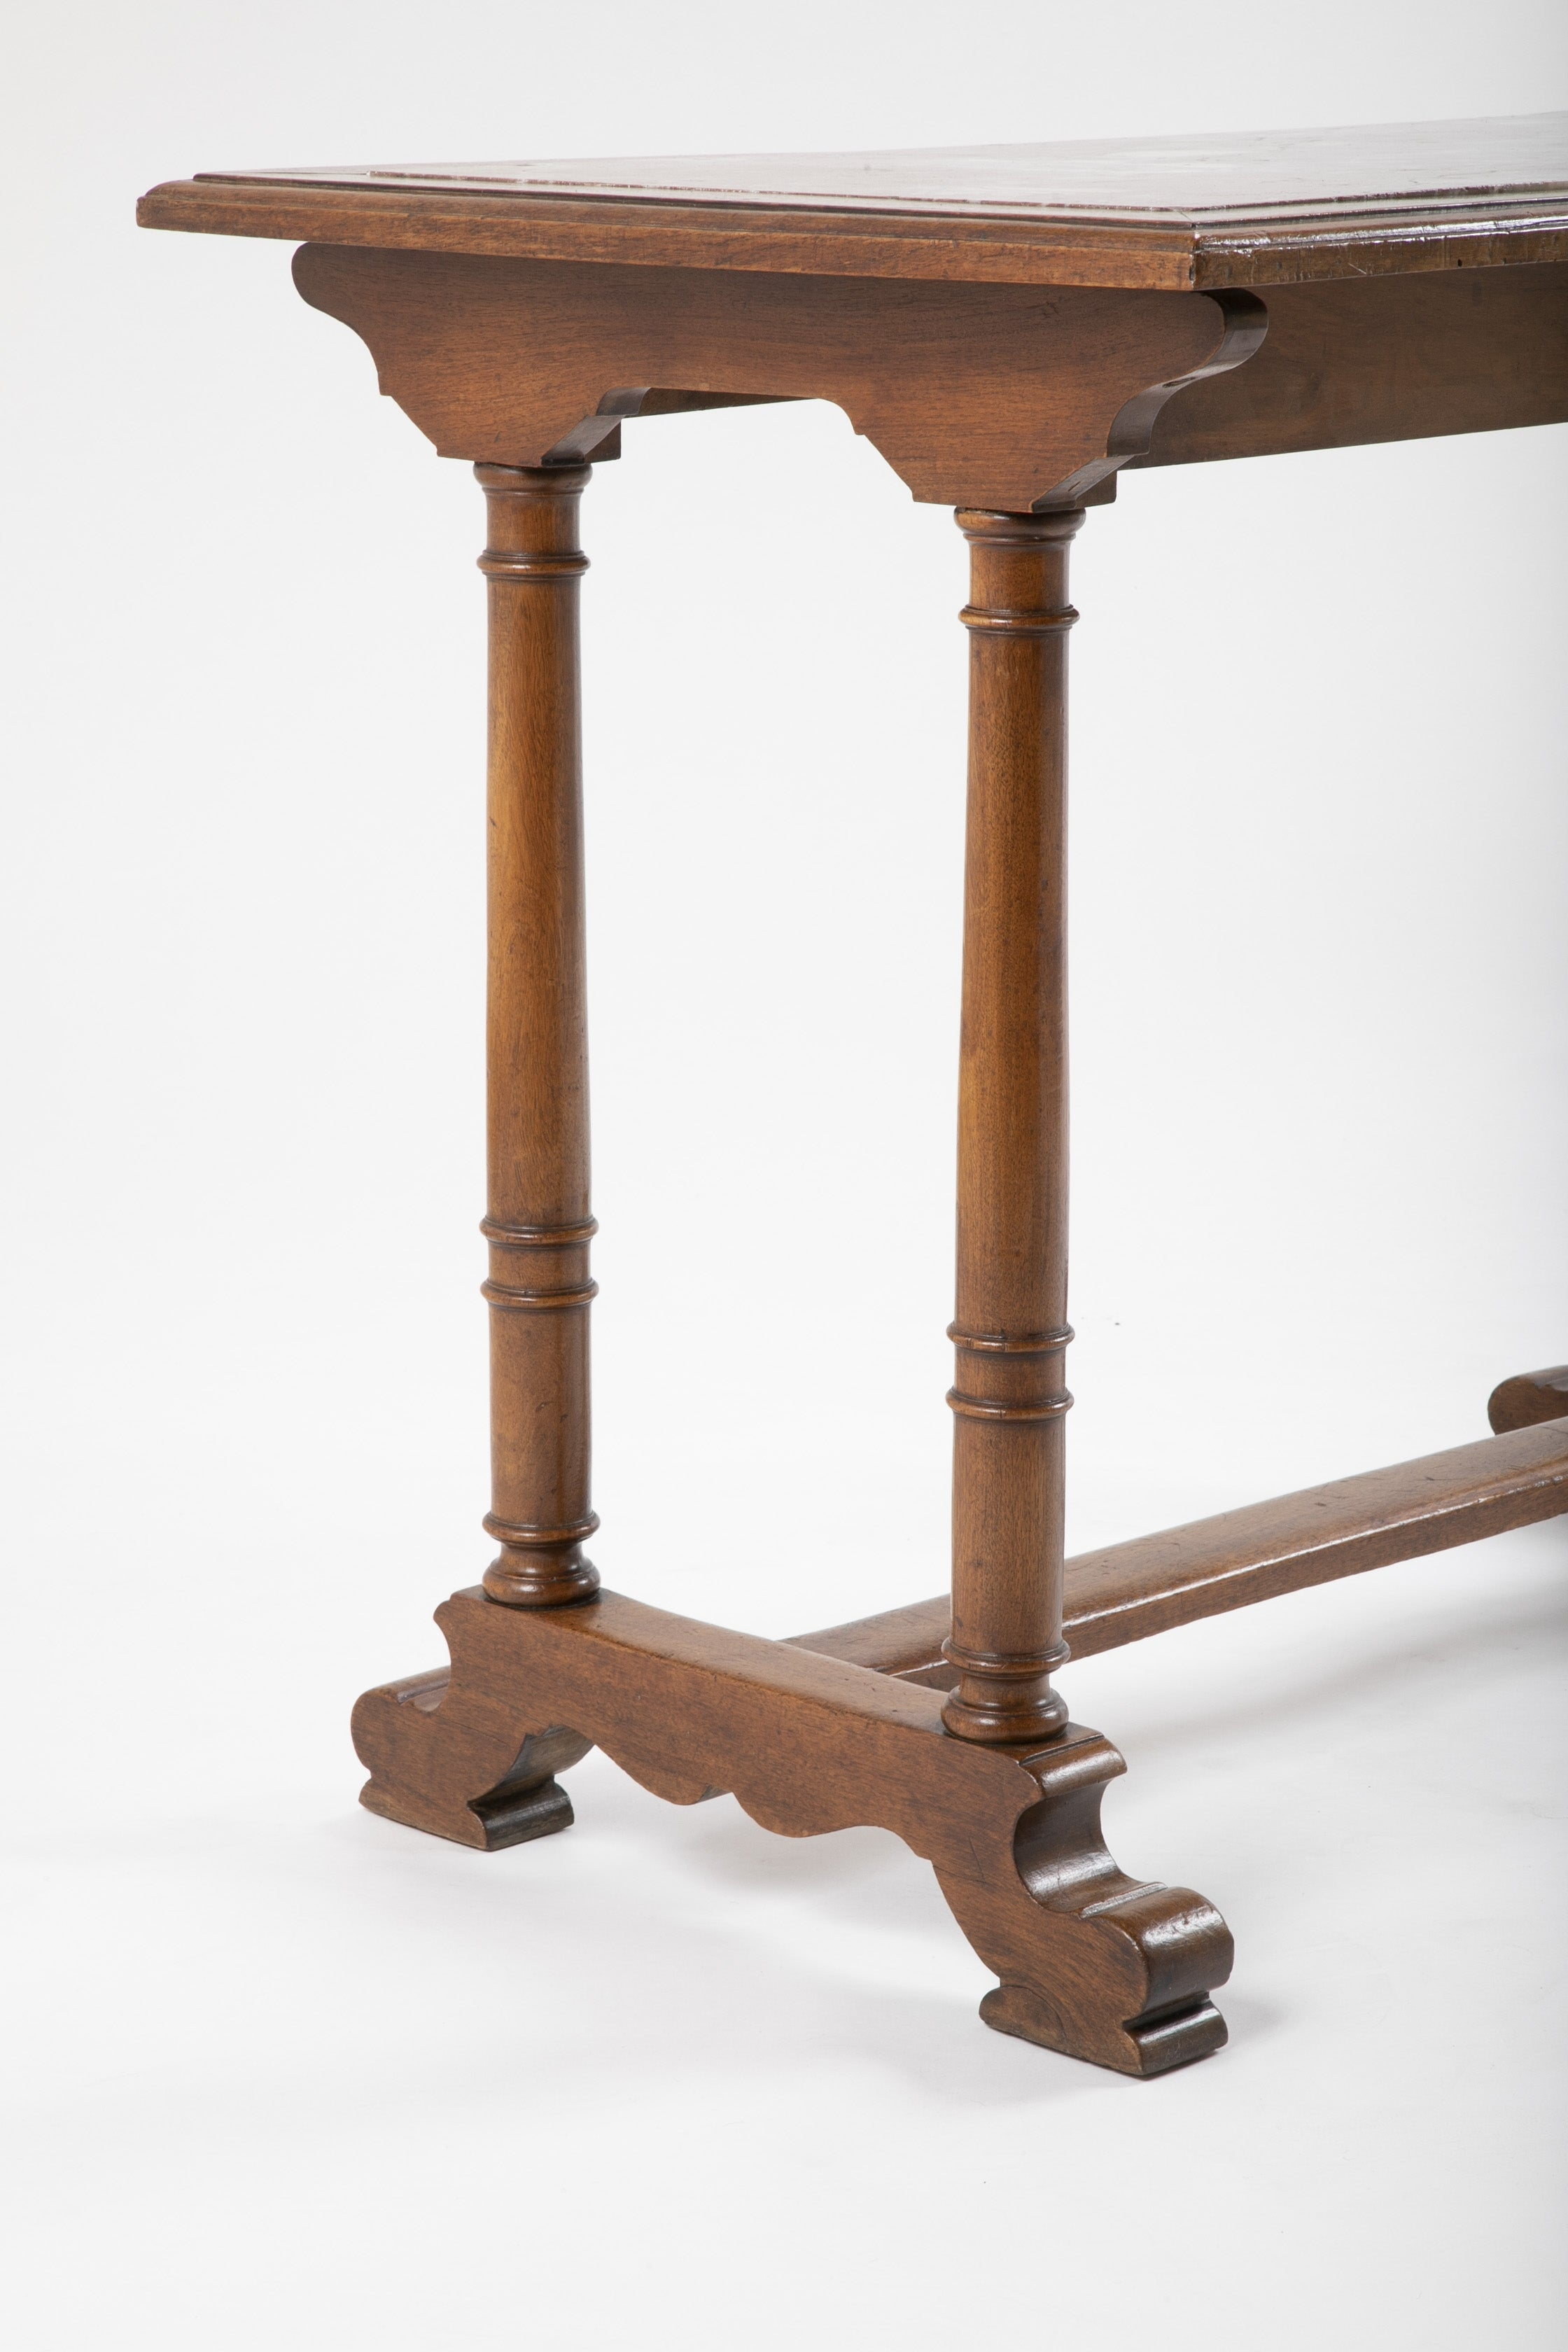 19th Century English Oak Console Table with Inset Marble Top